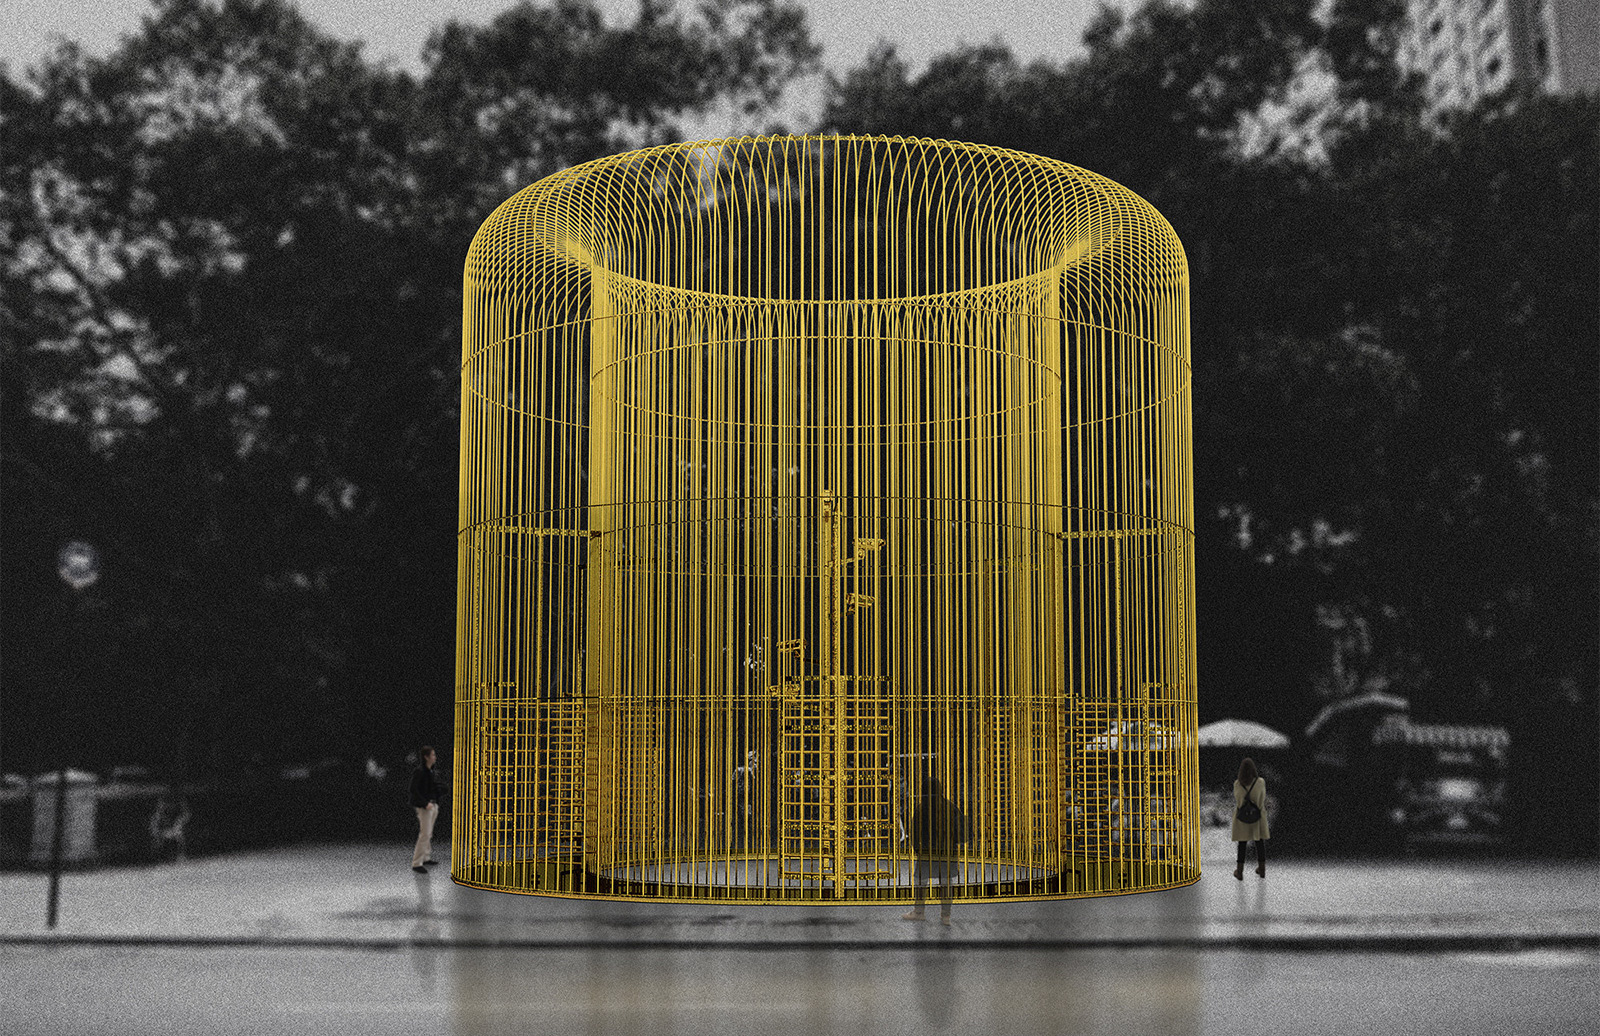 Render of Good Fences Make Good Neighbors by Ai Weiwei